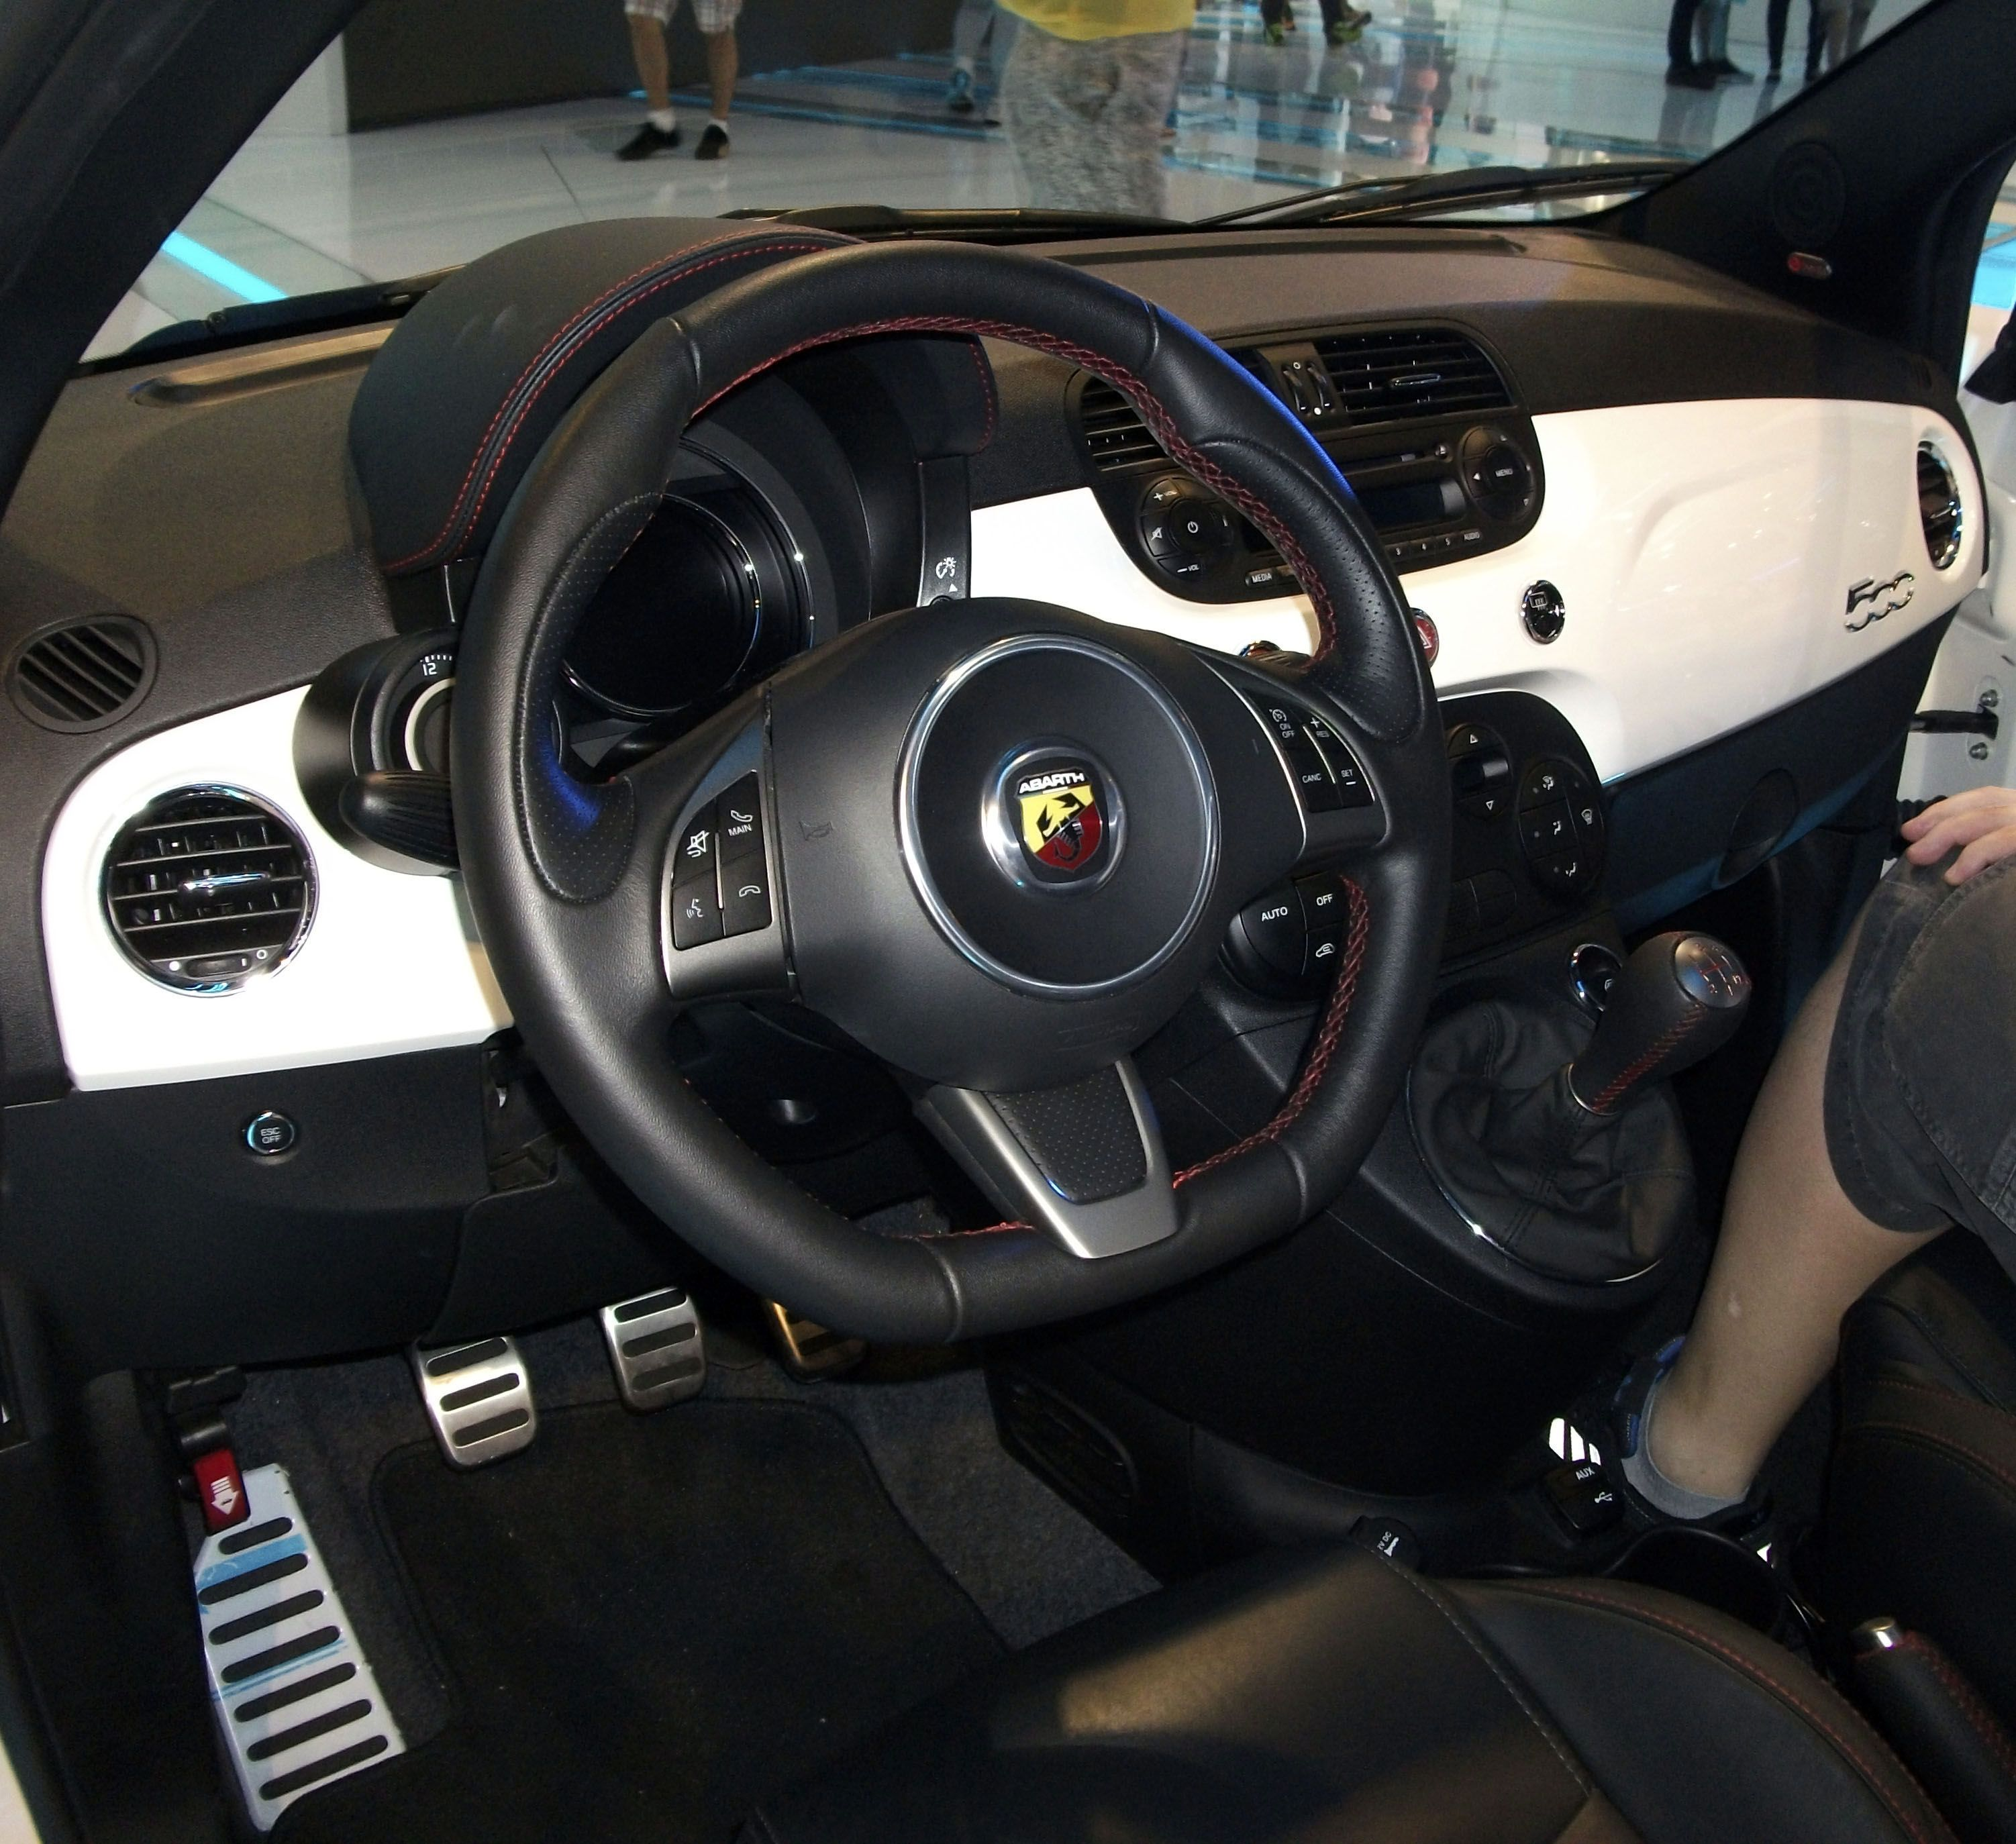 Fiat 500 Abarth interior | Fiat | Pinterest | Fiat and Cars